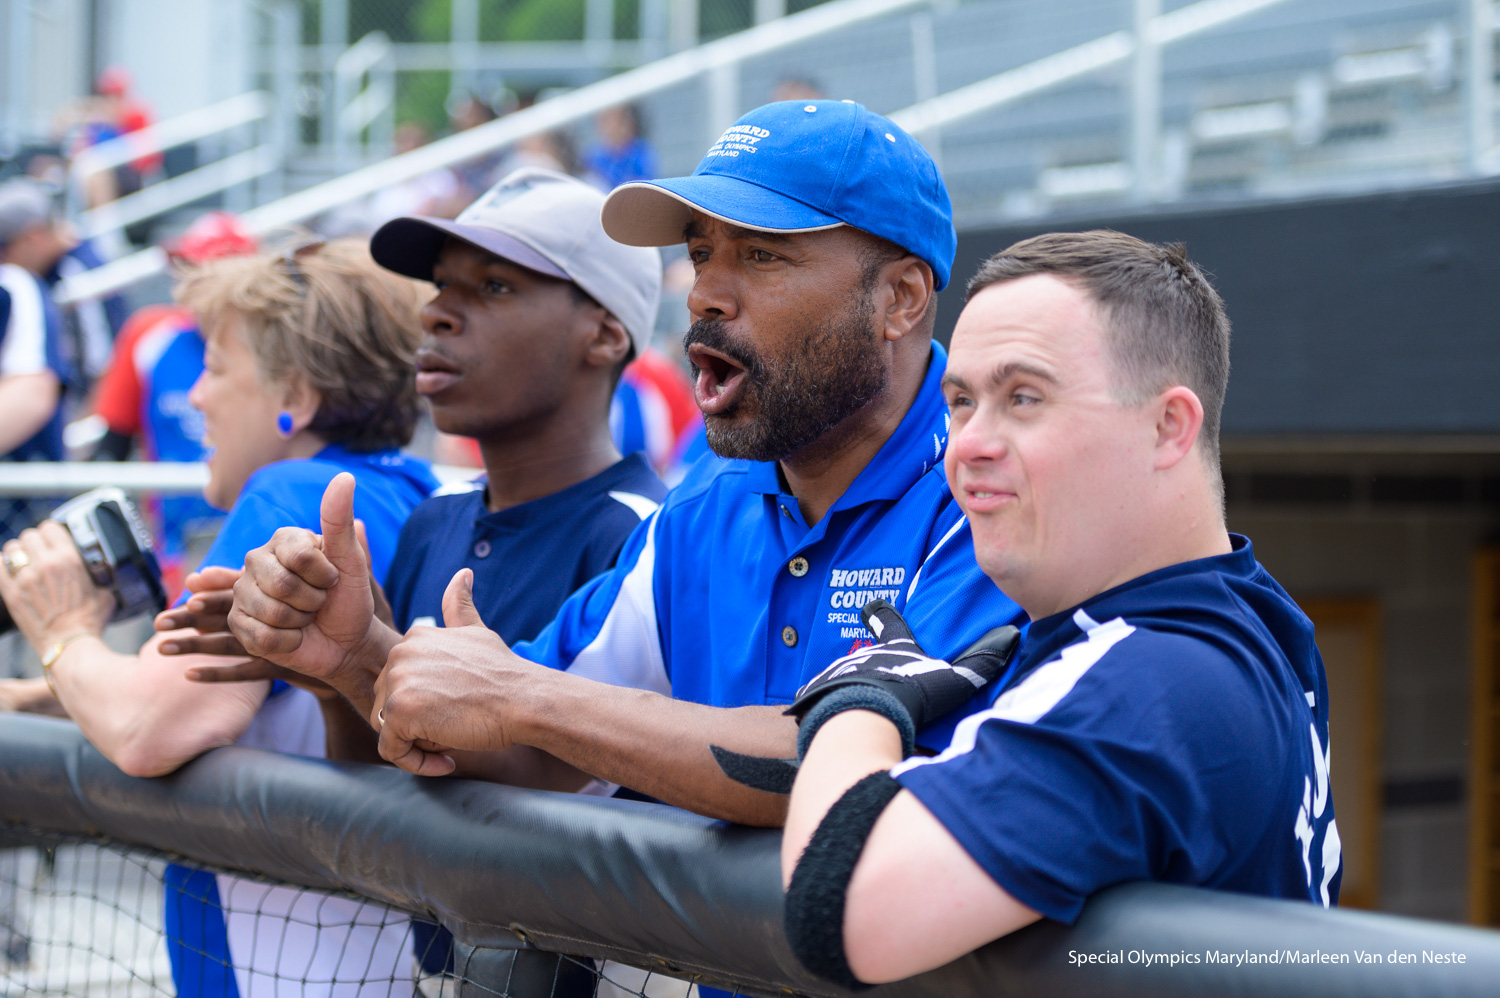 Howard County coaches and athlete watching the game from the sidelines at the Varsity Softball Field at Towson University on Sunday, June 9, 2019.